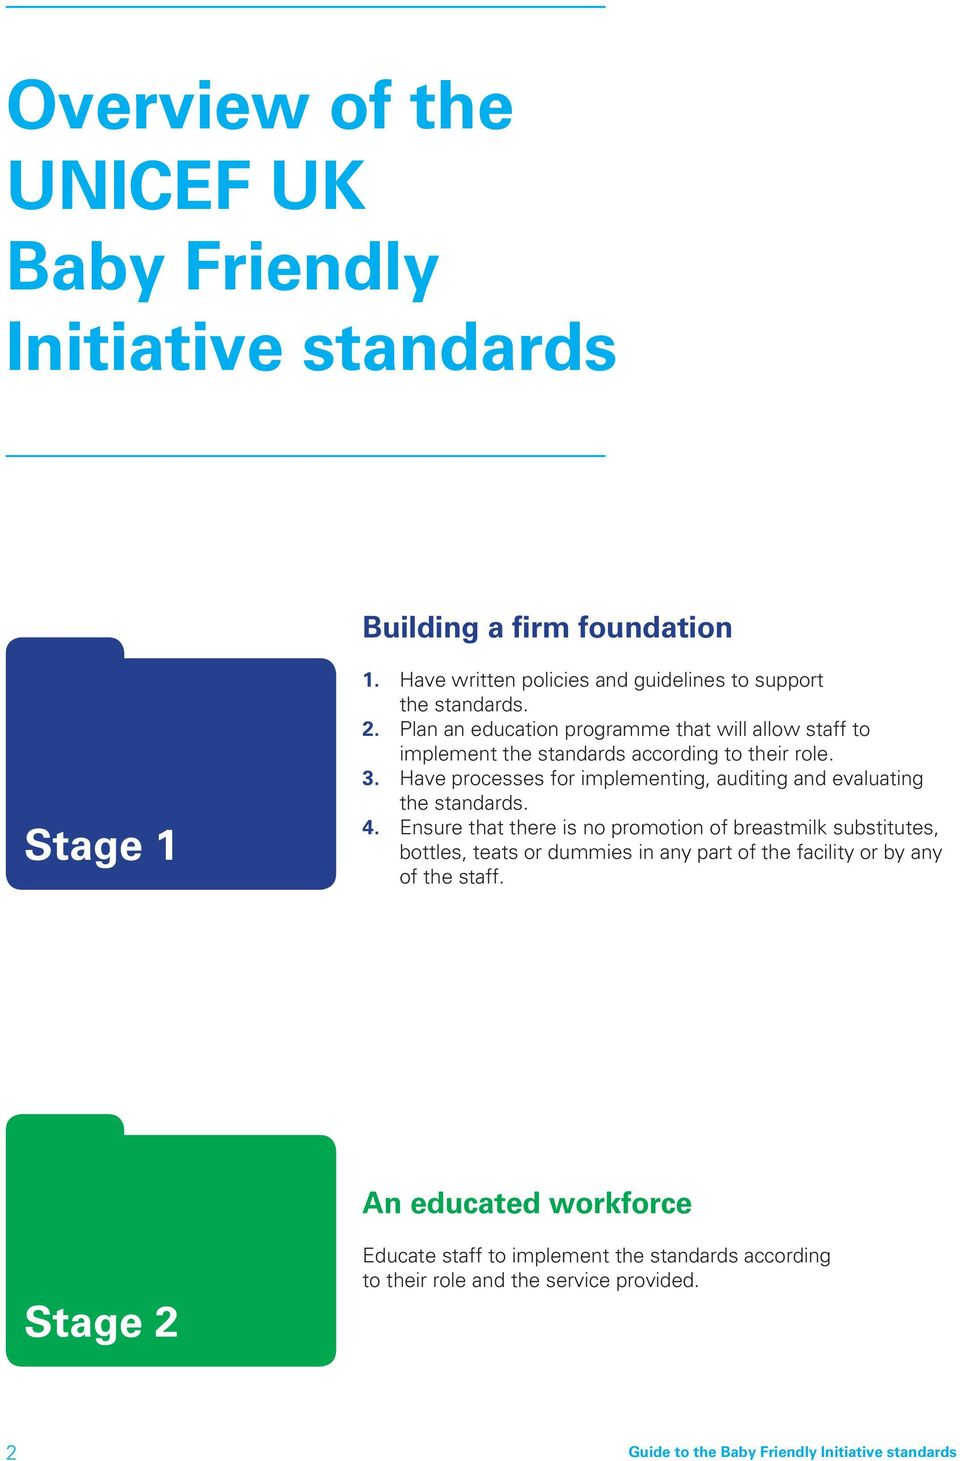 Have processes for implementing, auditing and evaluating the standards. 4.